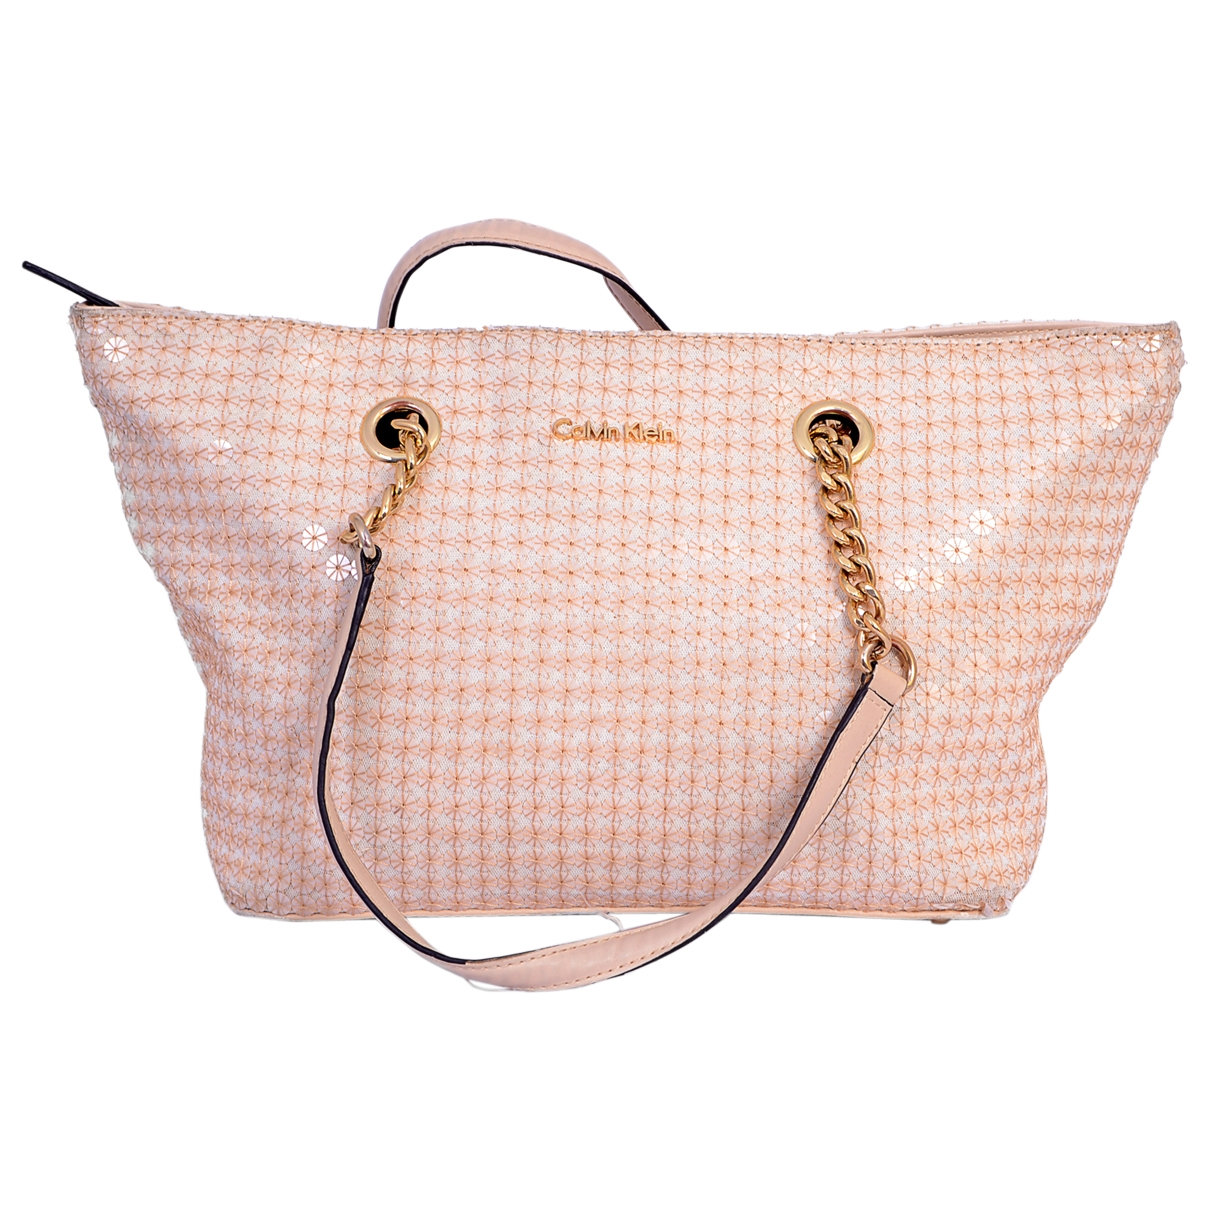 Calvin Klein \N Pink Glitter handbag for Women \N